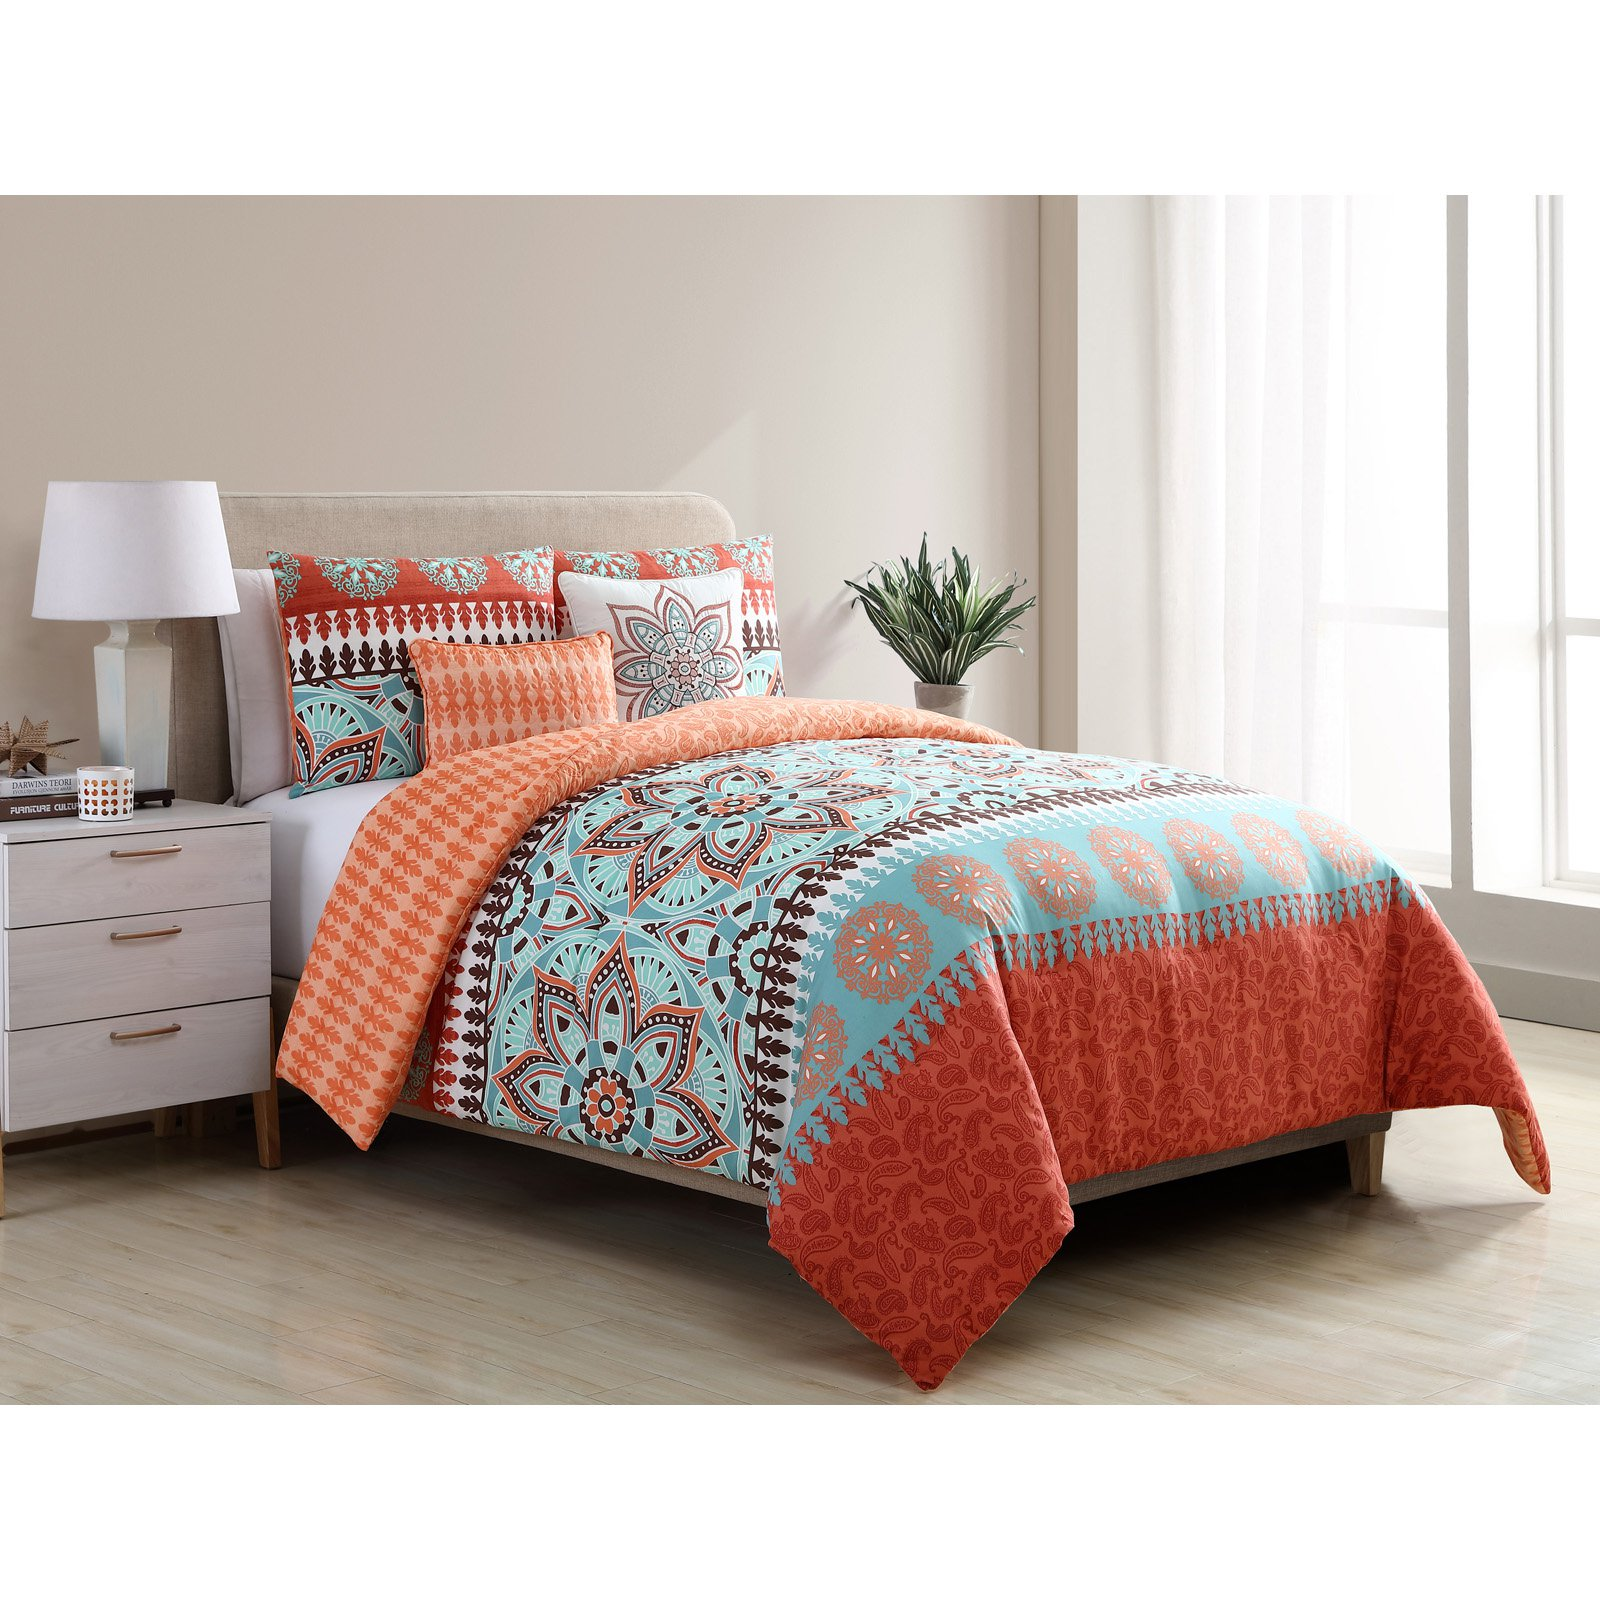 VCNY Home Multicolor Ezra Geometric Medallion 4/5 Piece Reversible Bedding Comforter Set, Shams and Decorative Pillows Included